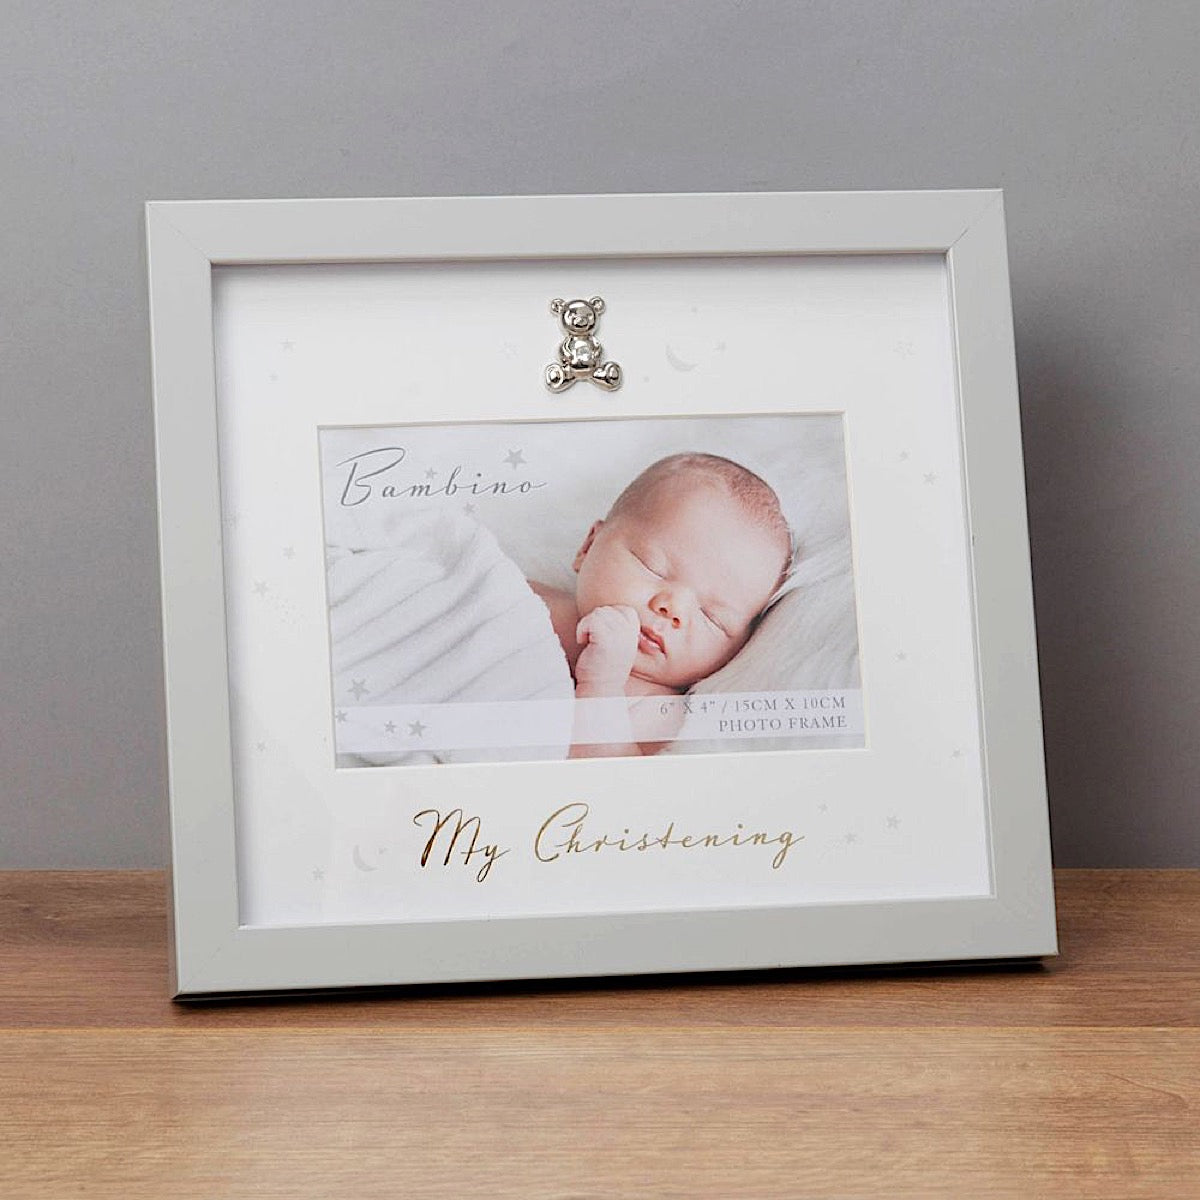 Bambino My Christening Photo Frame